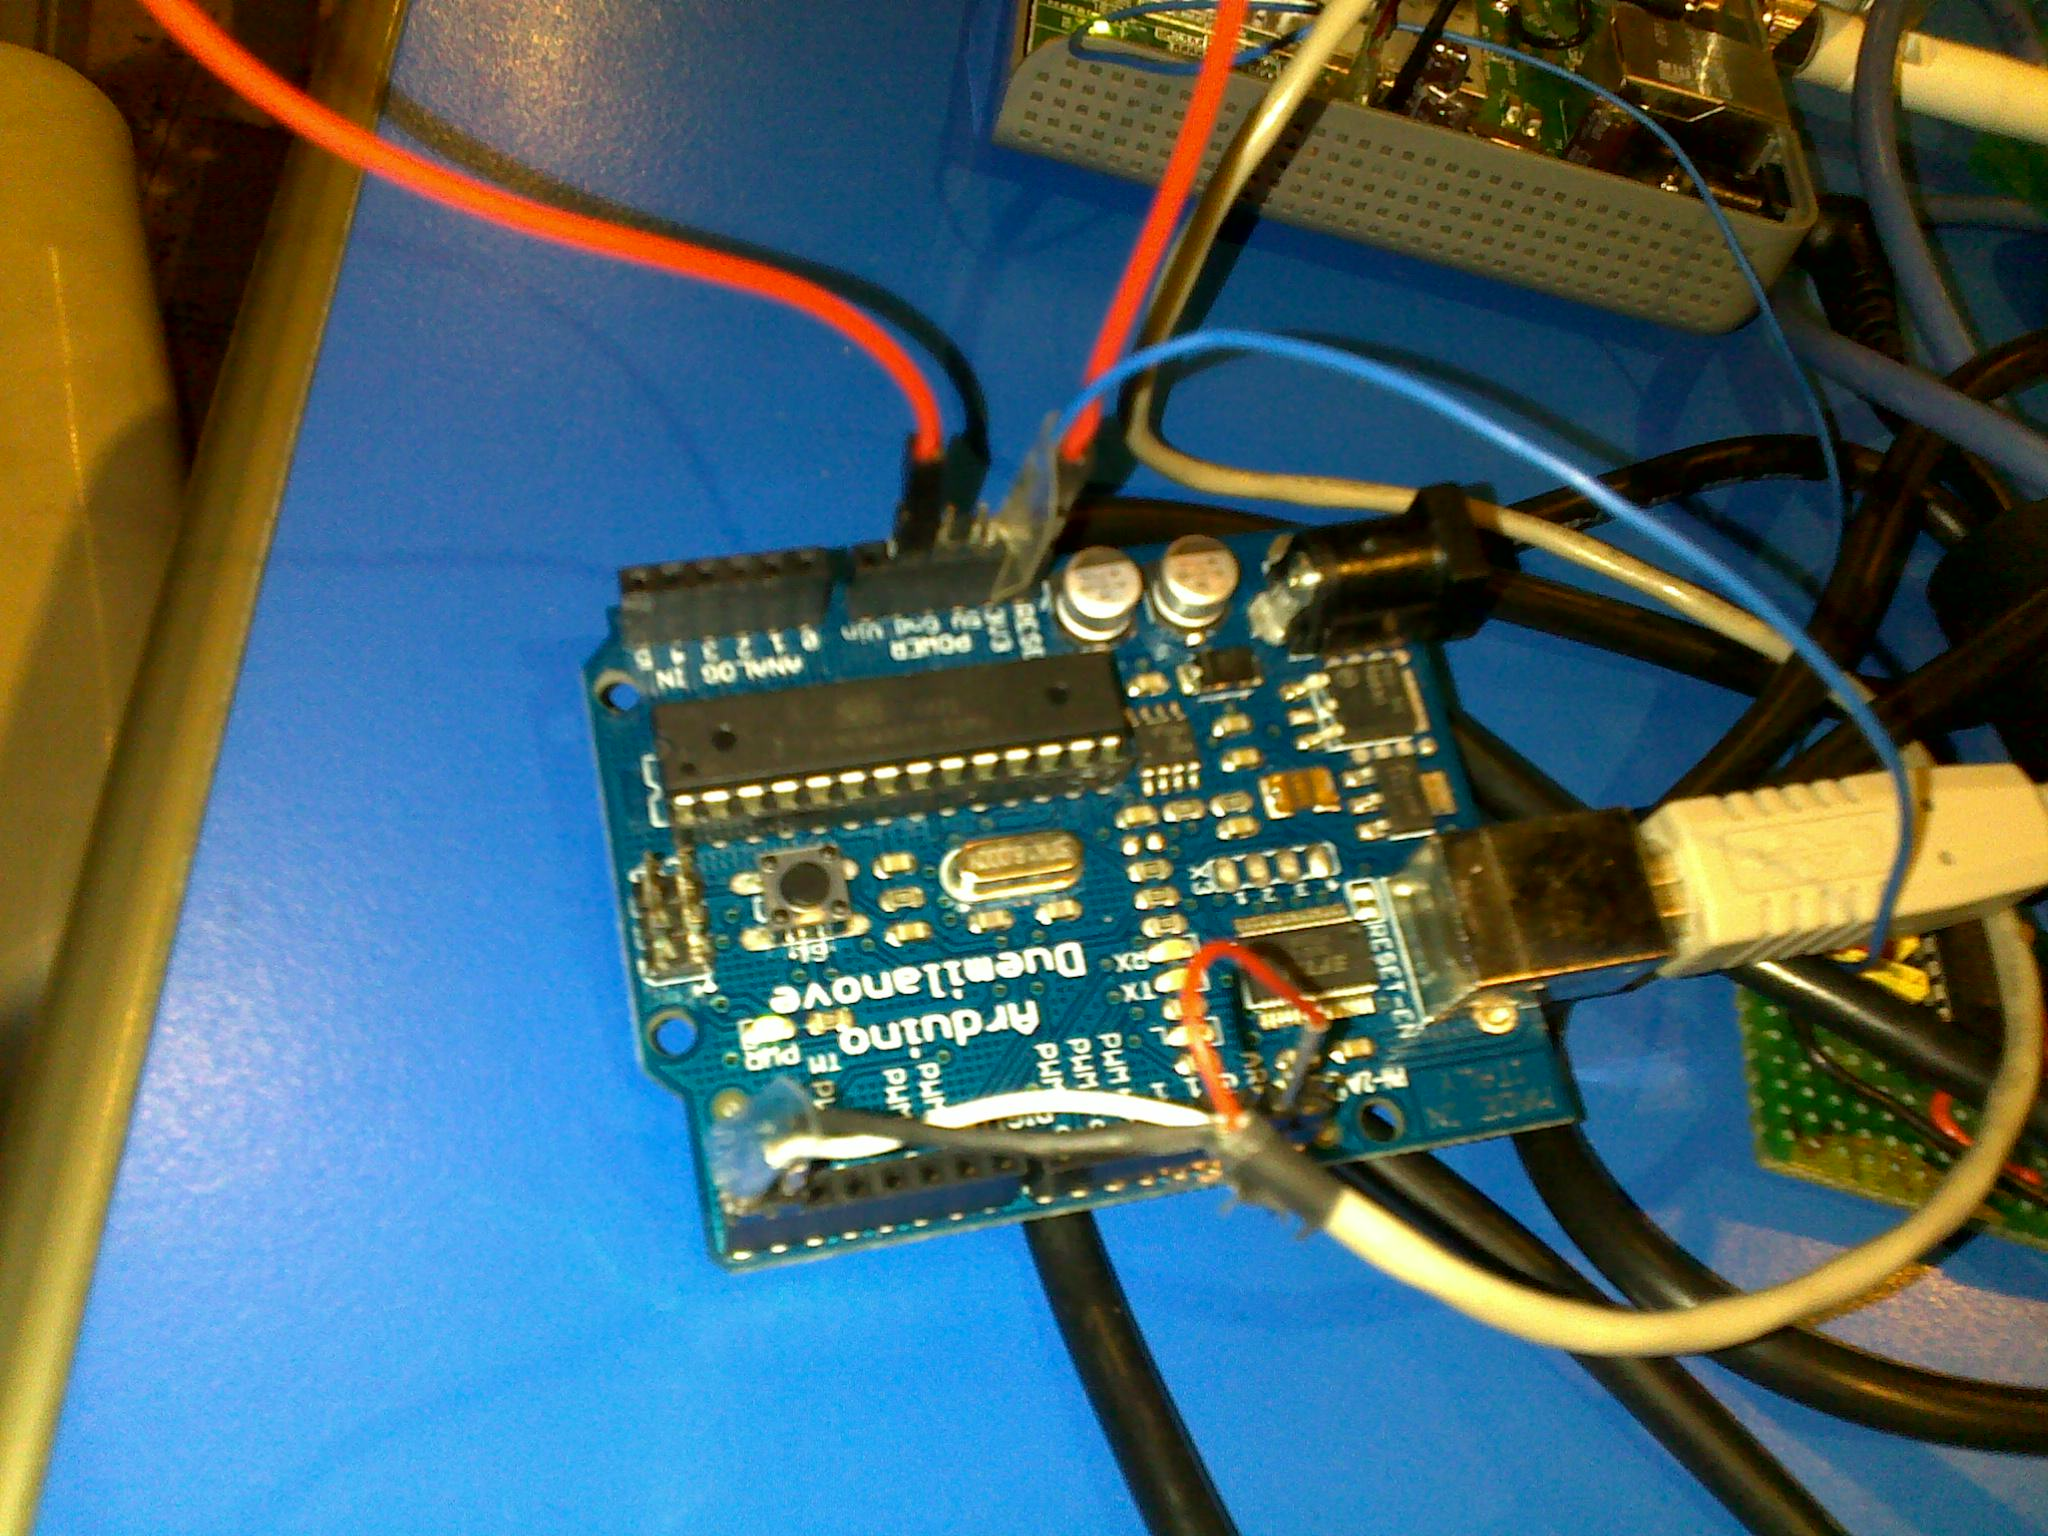 Use The Arduino As A Serial Adaptor Zoobab Usb To Rs232 Adapter Schematic Circuit Hd Walls Find Pictures